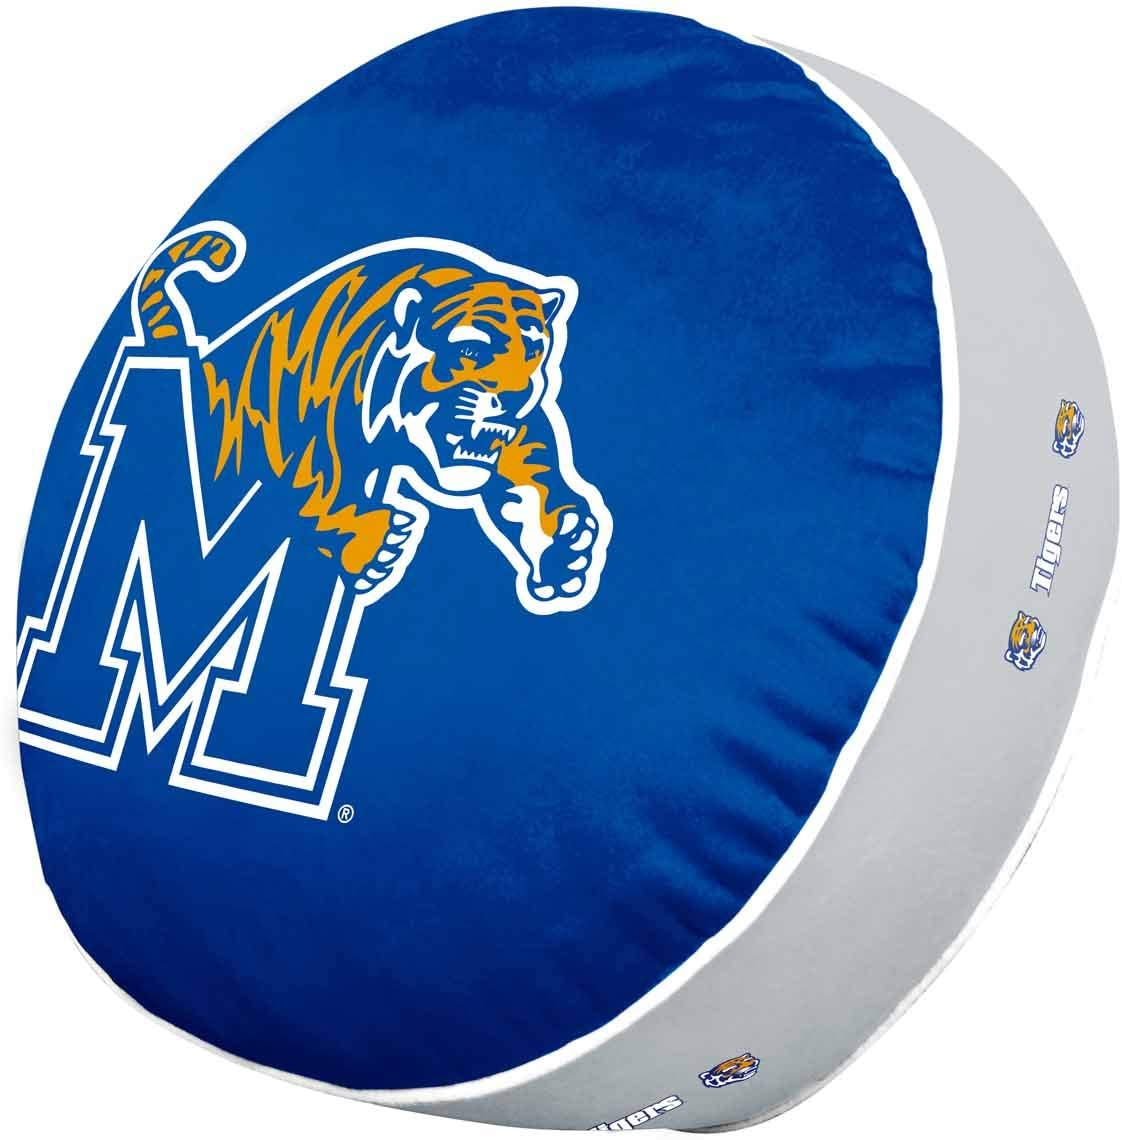 Mesa Mall Campus Colors Team Logo 15 Inch Ranking TOP7 Pillow Plush Soft Stretch Ultra